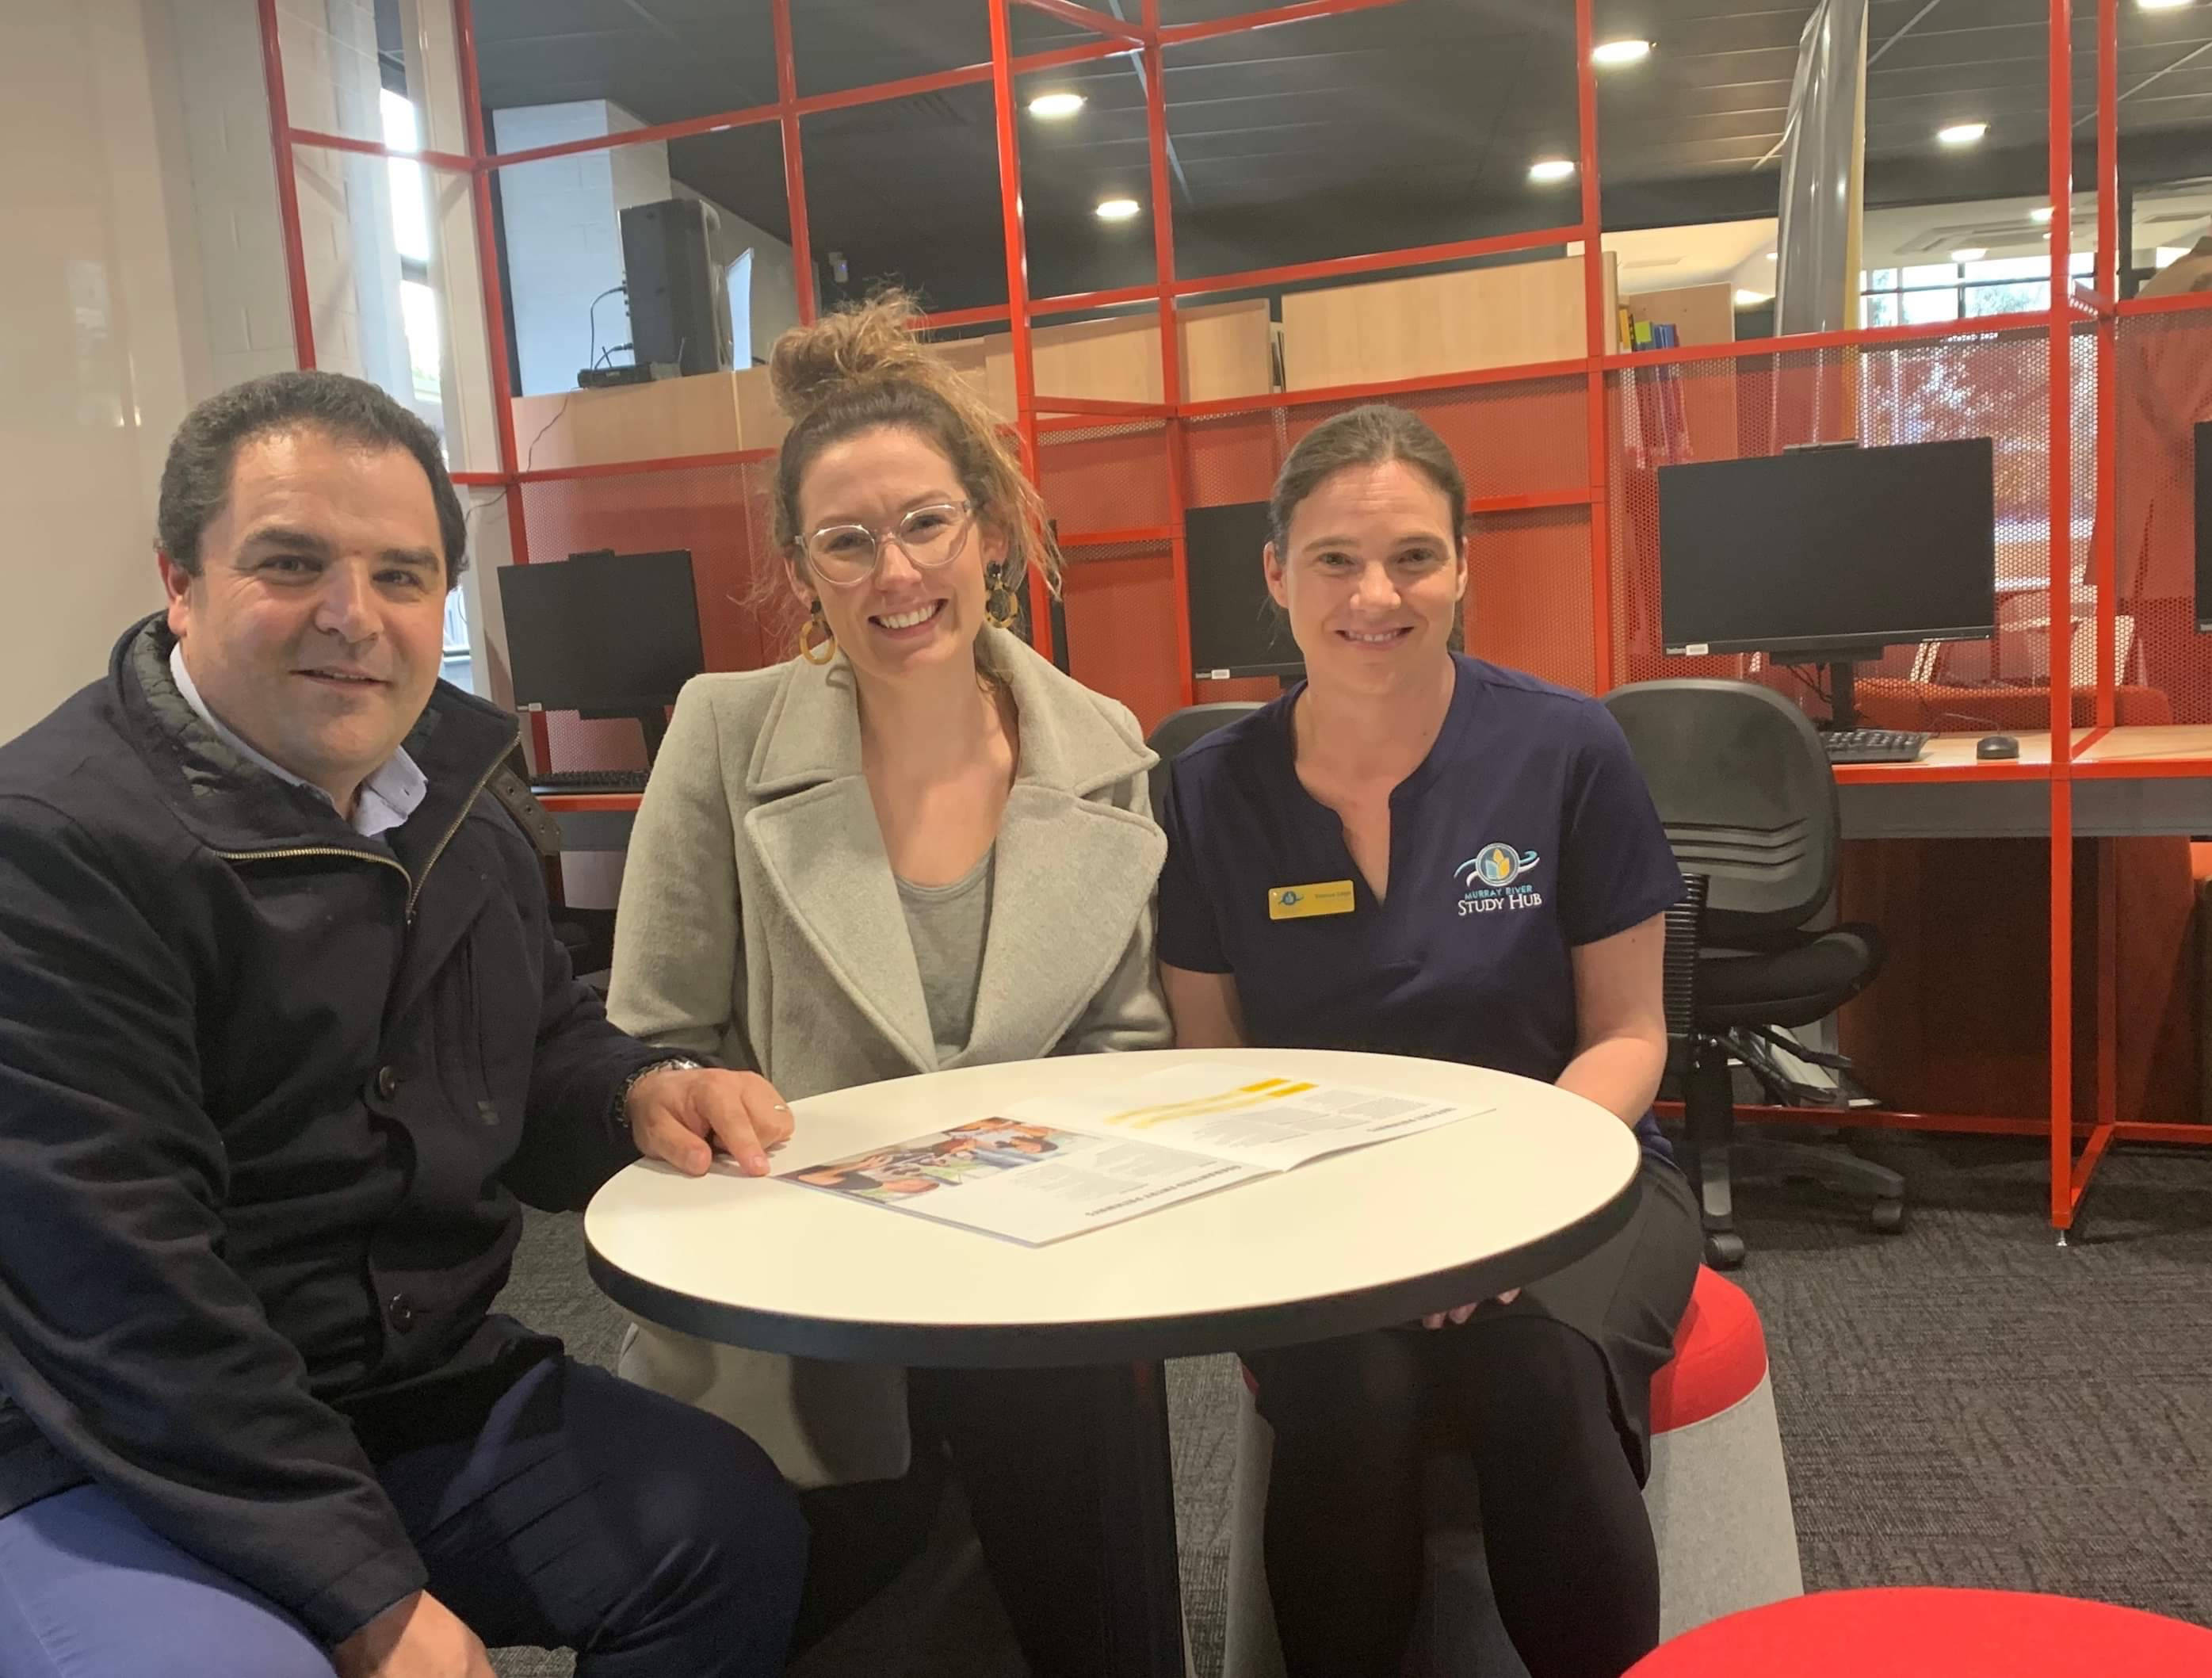 STUDY HUB OPENS FOR MURRAYLANDS STUDENTS